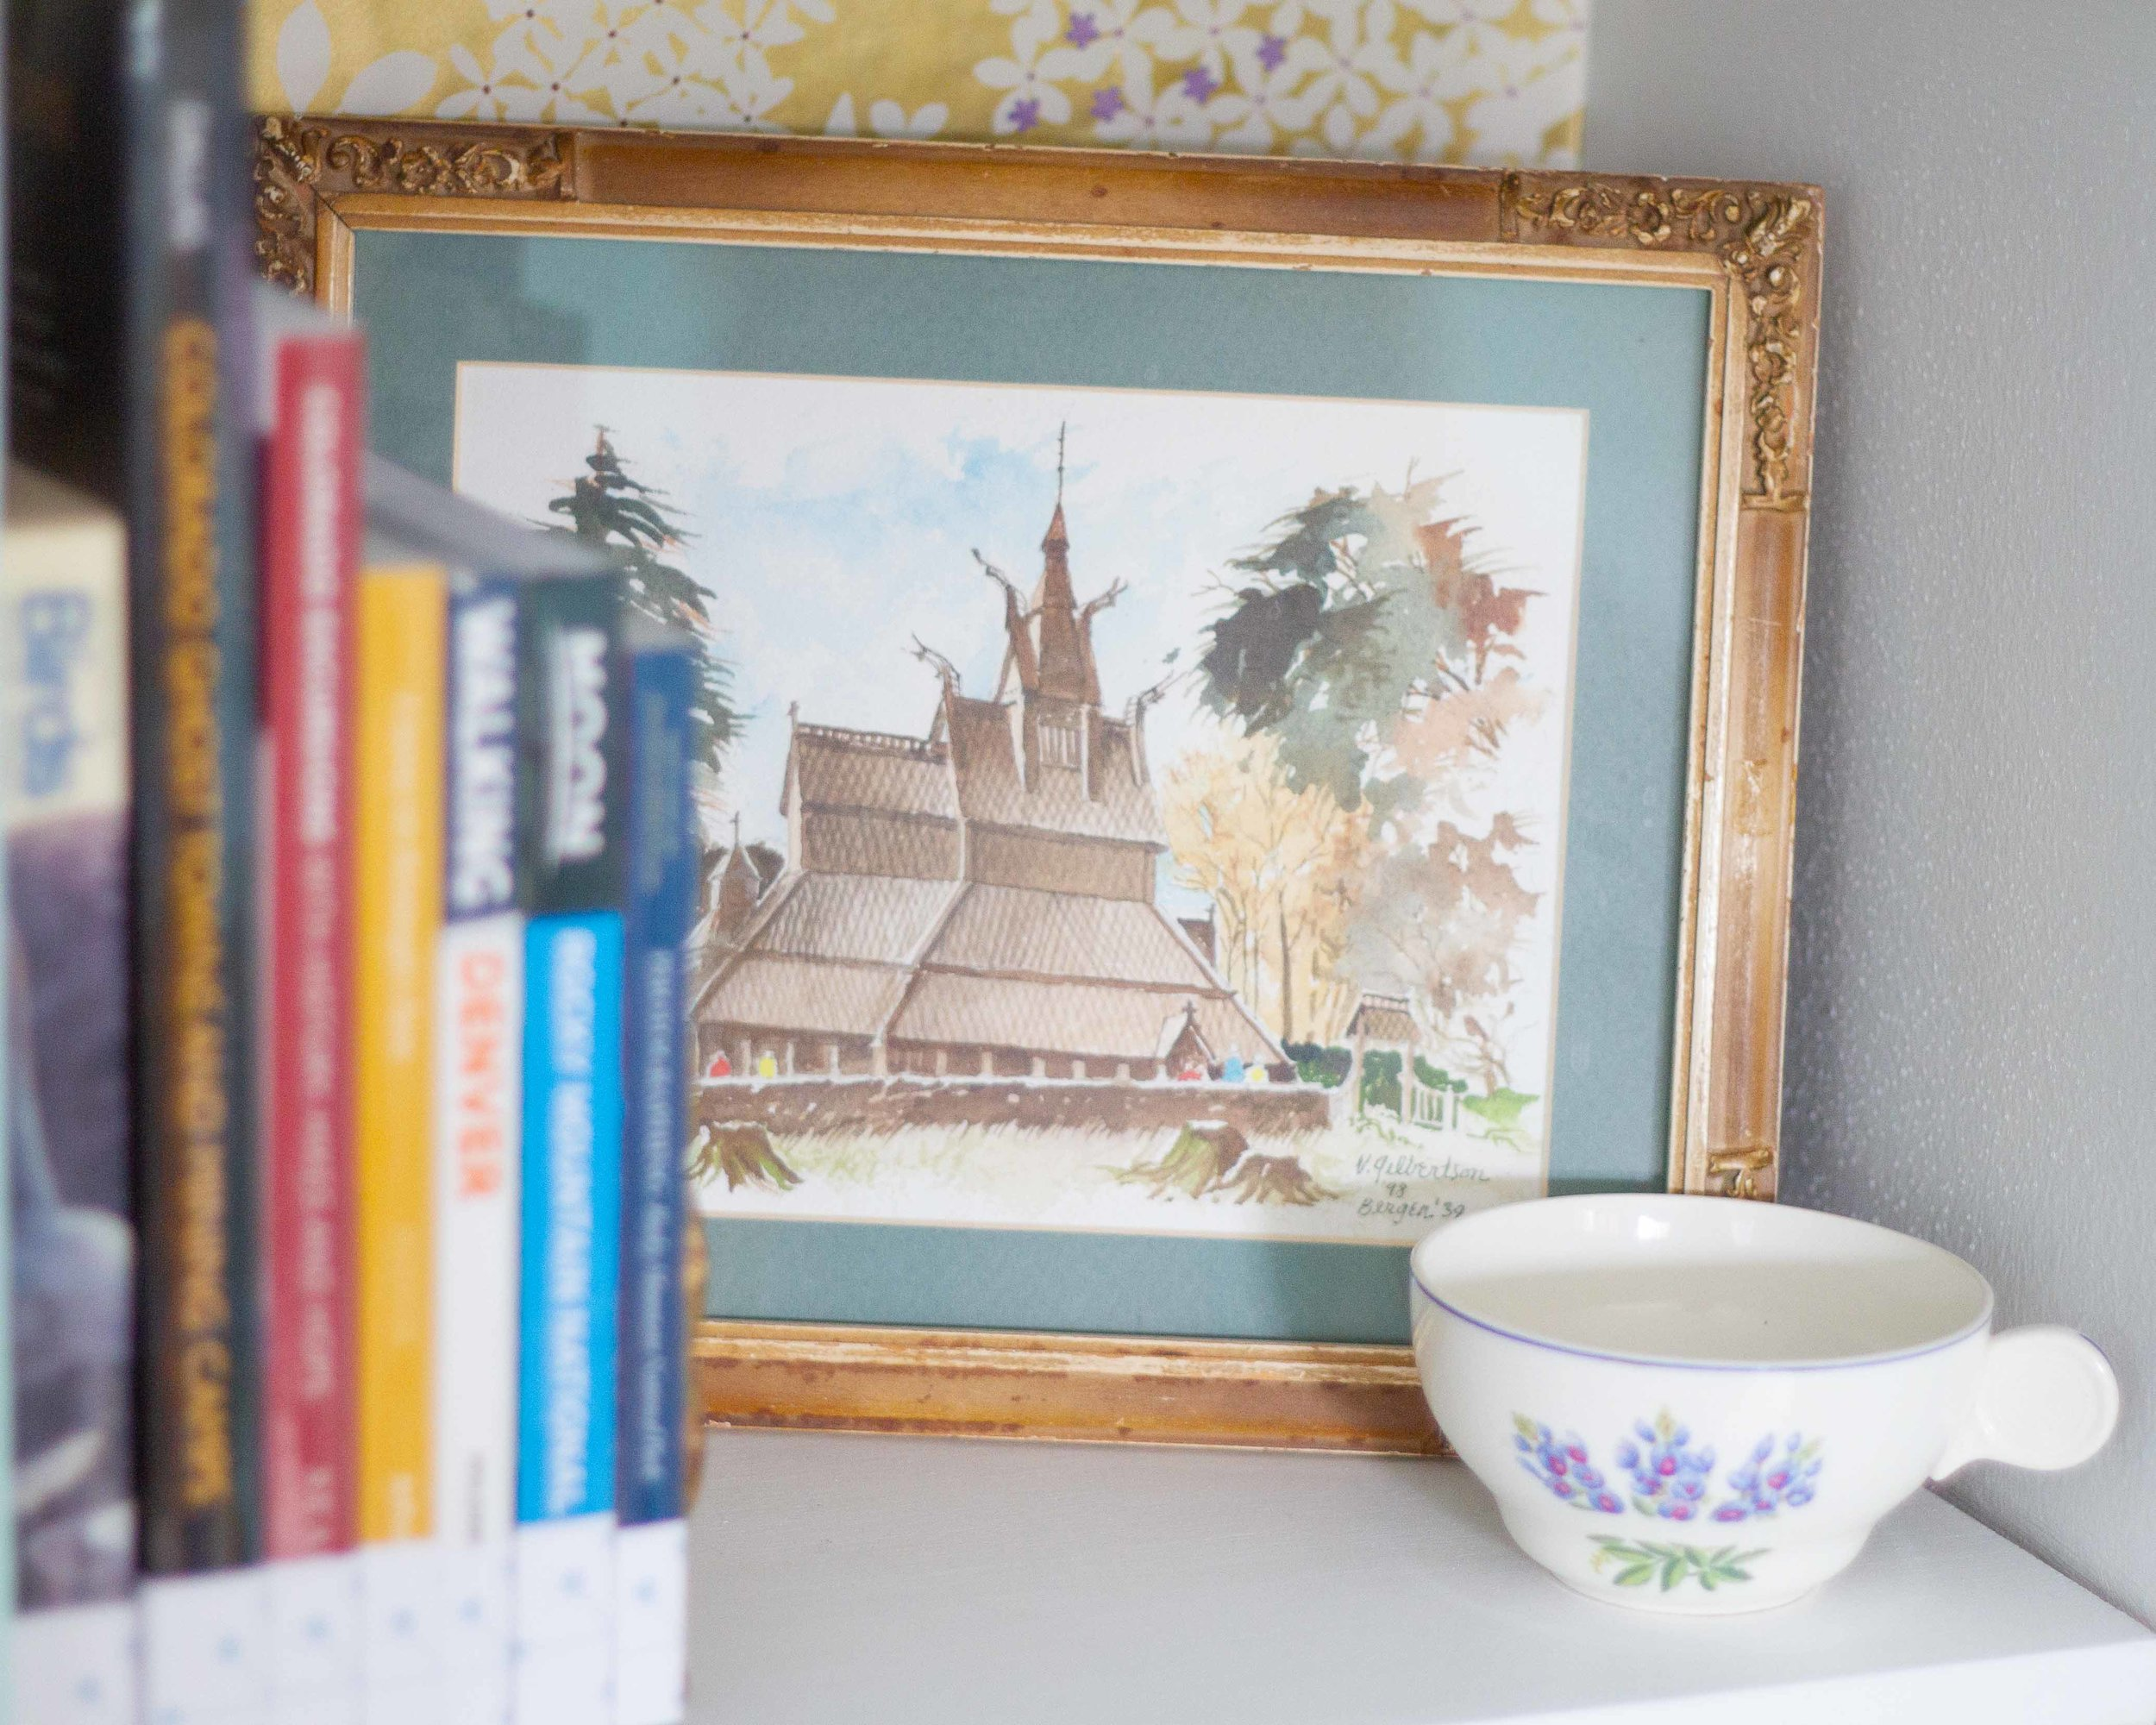 Minnesota artist, Victor Gilbertson, painted this watercolor as a wedding gift for us. The cup is vintage — a pattern commemorating the Texas Centennial Exposition in 1936.